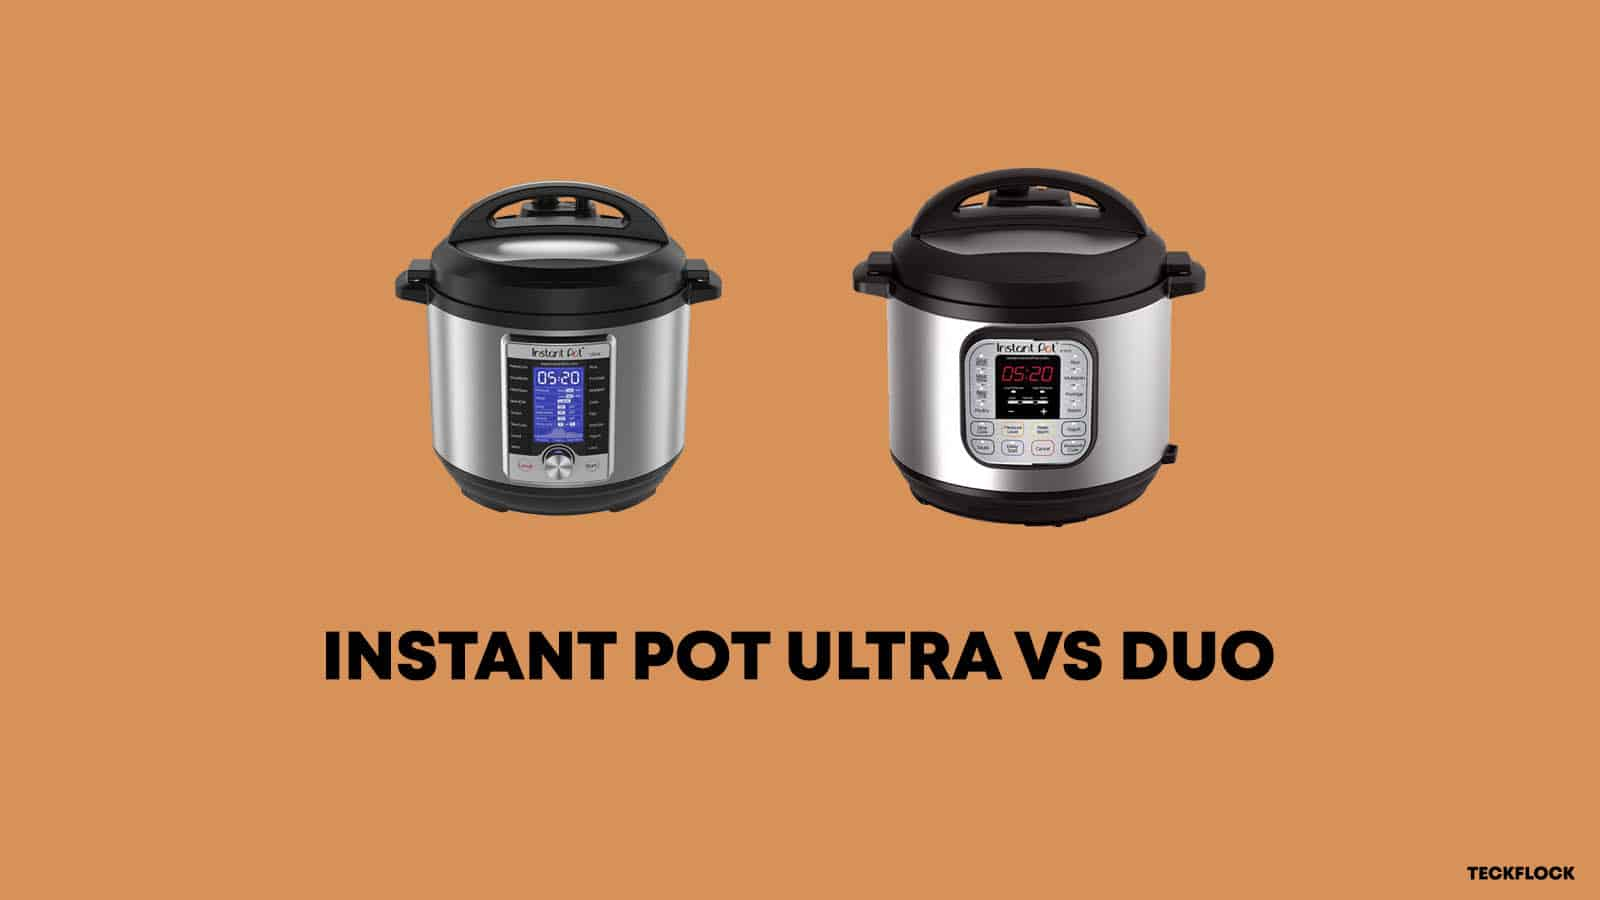 Instant Pot Ultra vs Duo